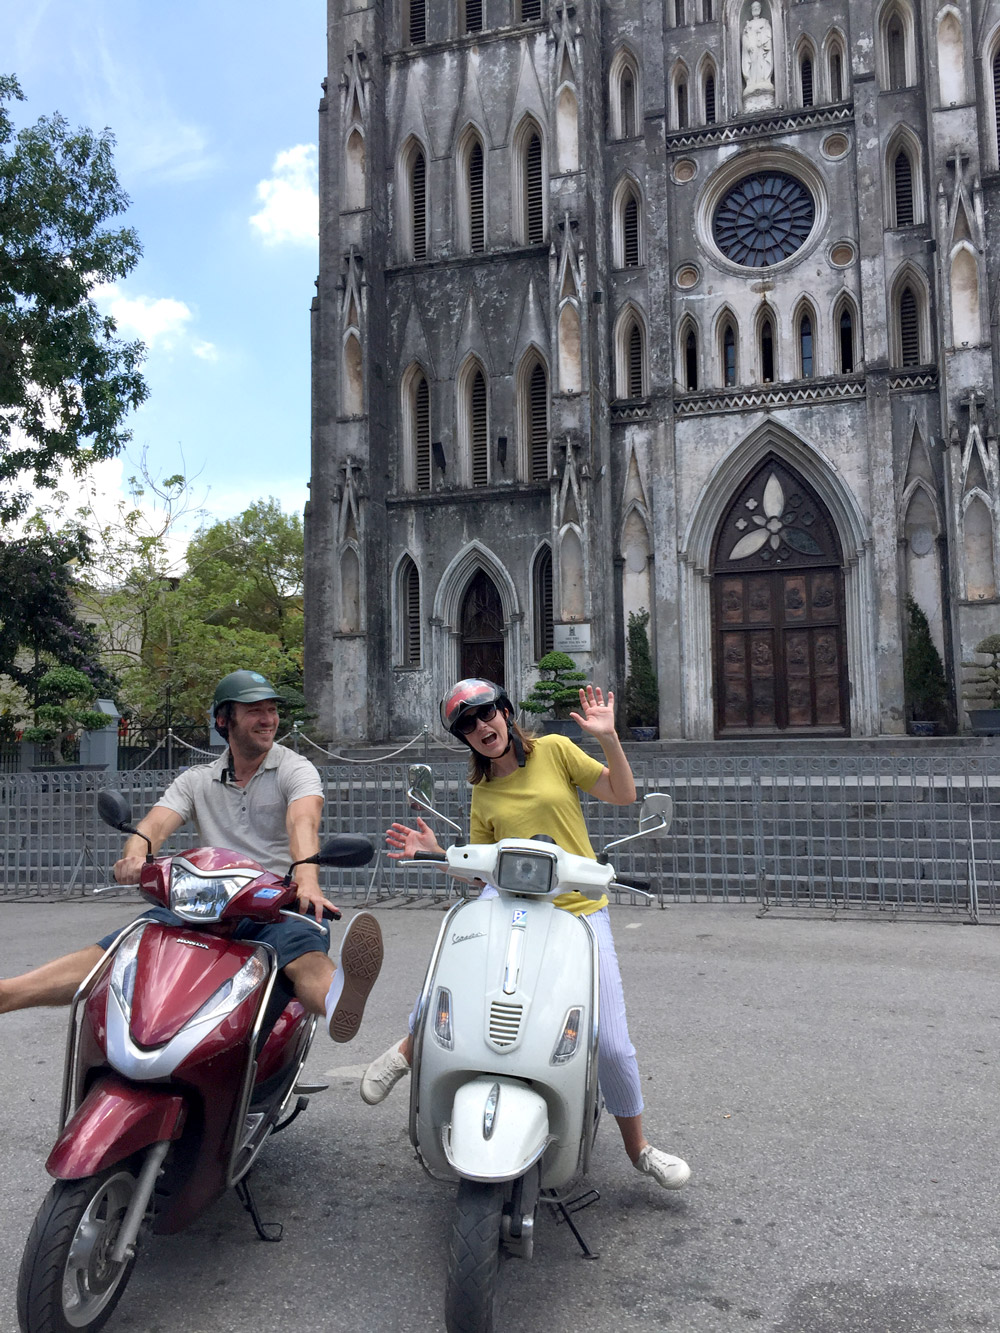 Taking a break during the Hanoi Motorbike Street Foods tour - Kristen Remeza